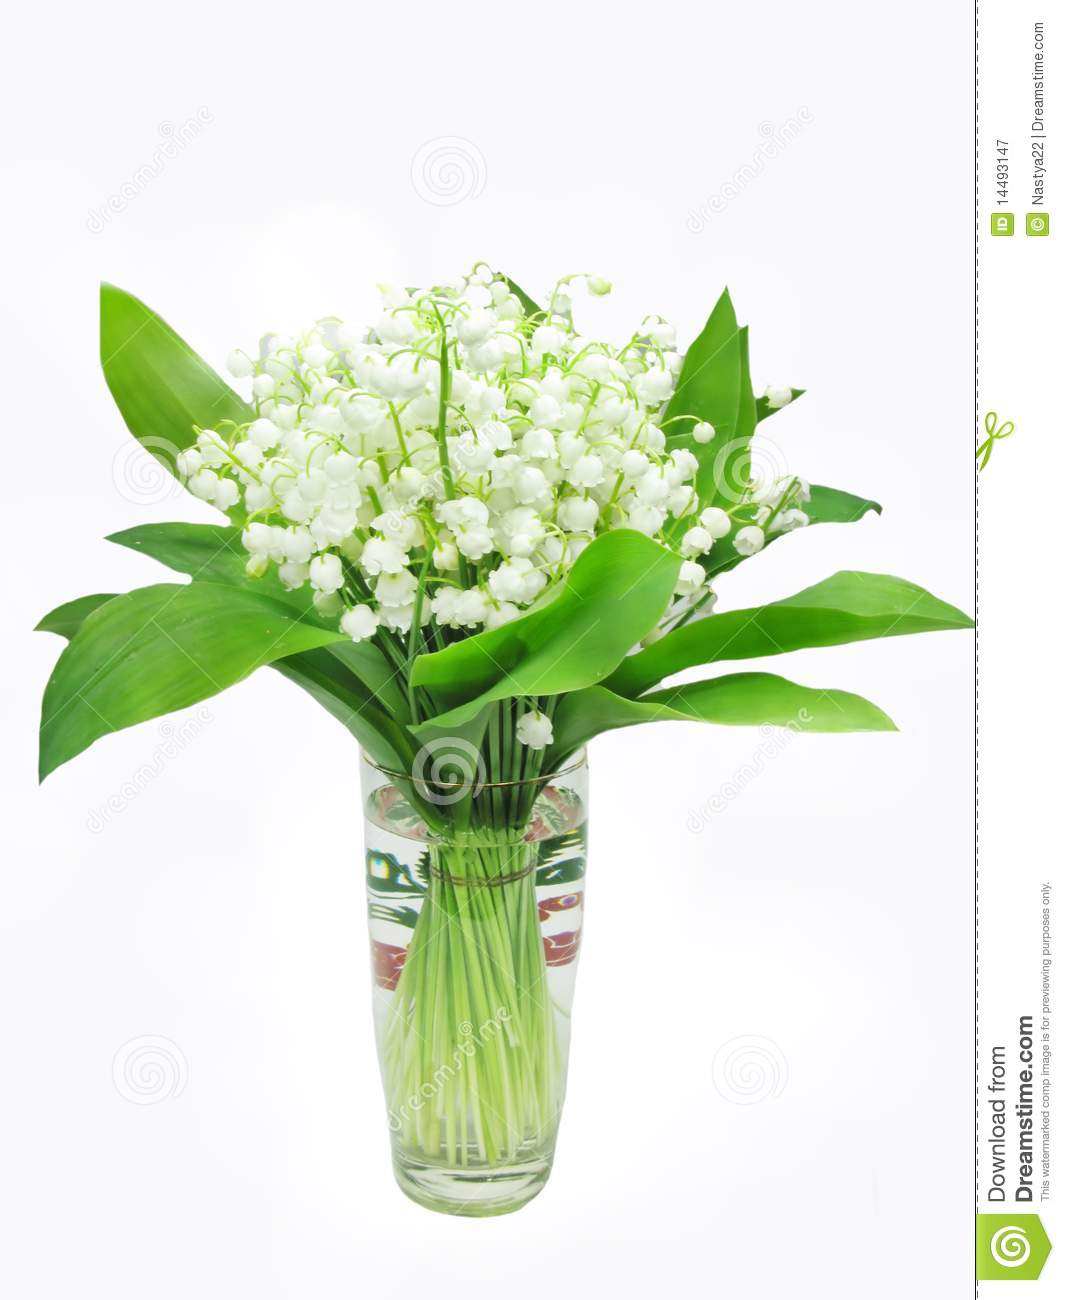 Lily Of The Valley Bouquet: Bouquet Of Lily Of The Valley Flowers Stock Image